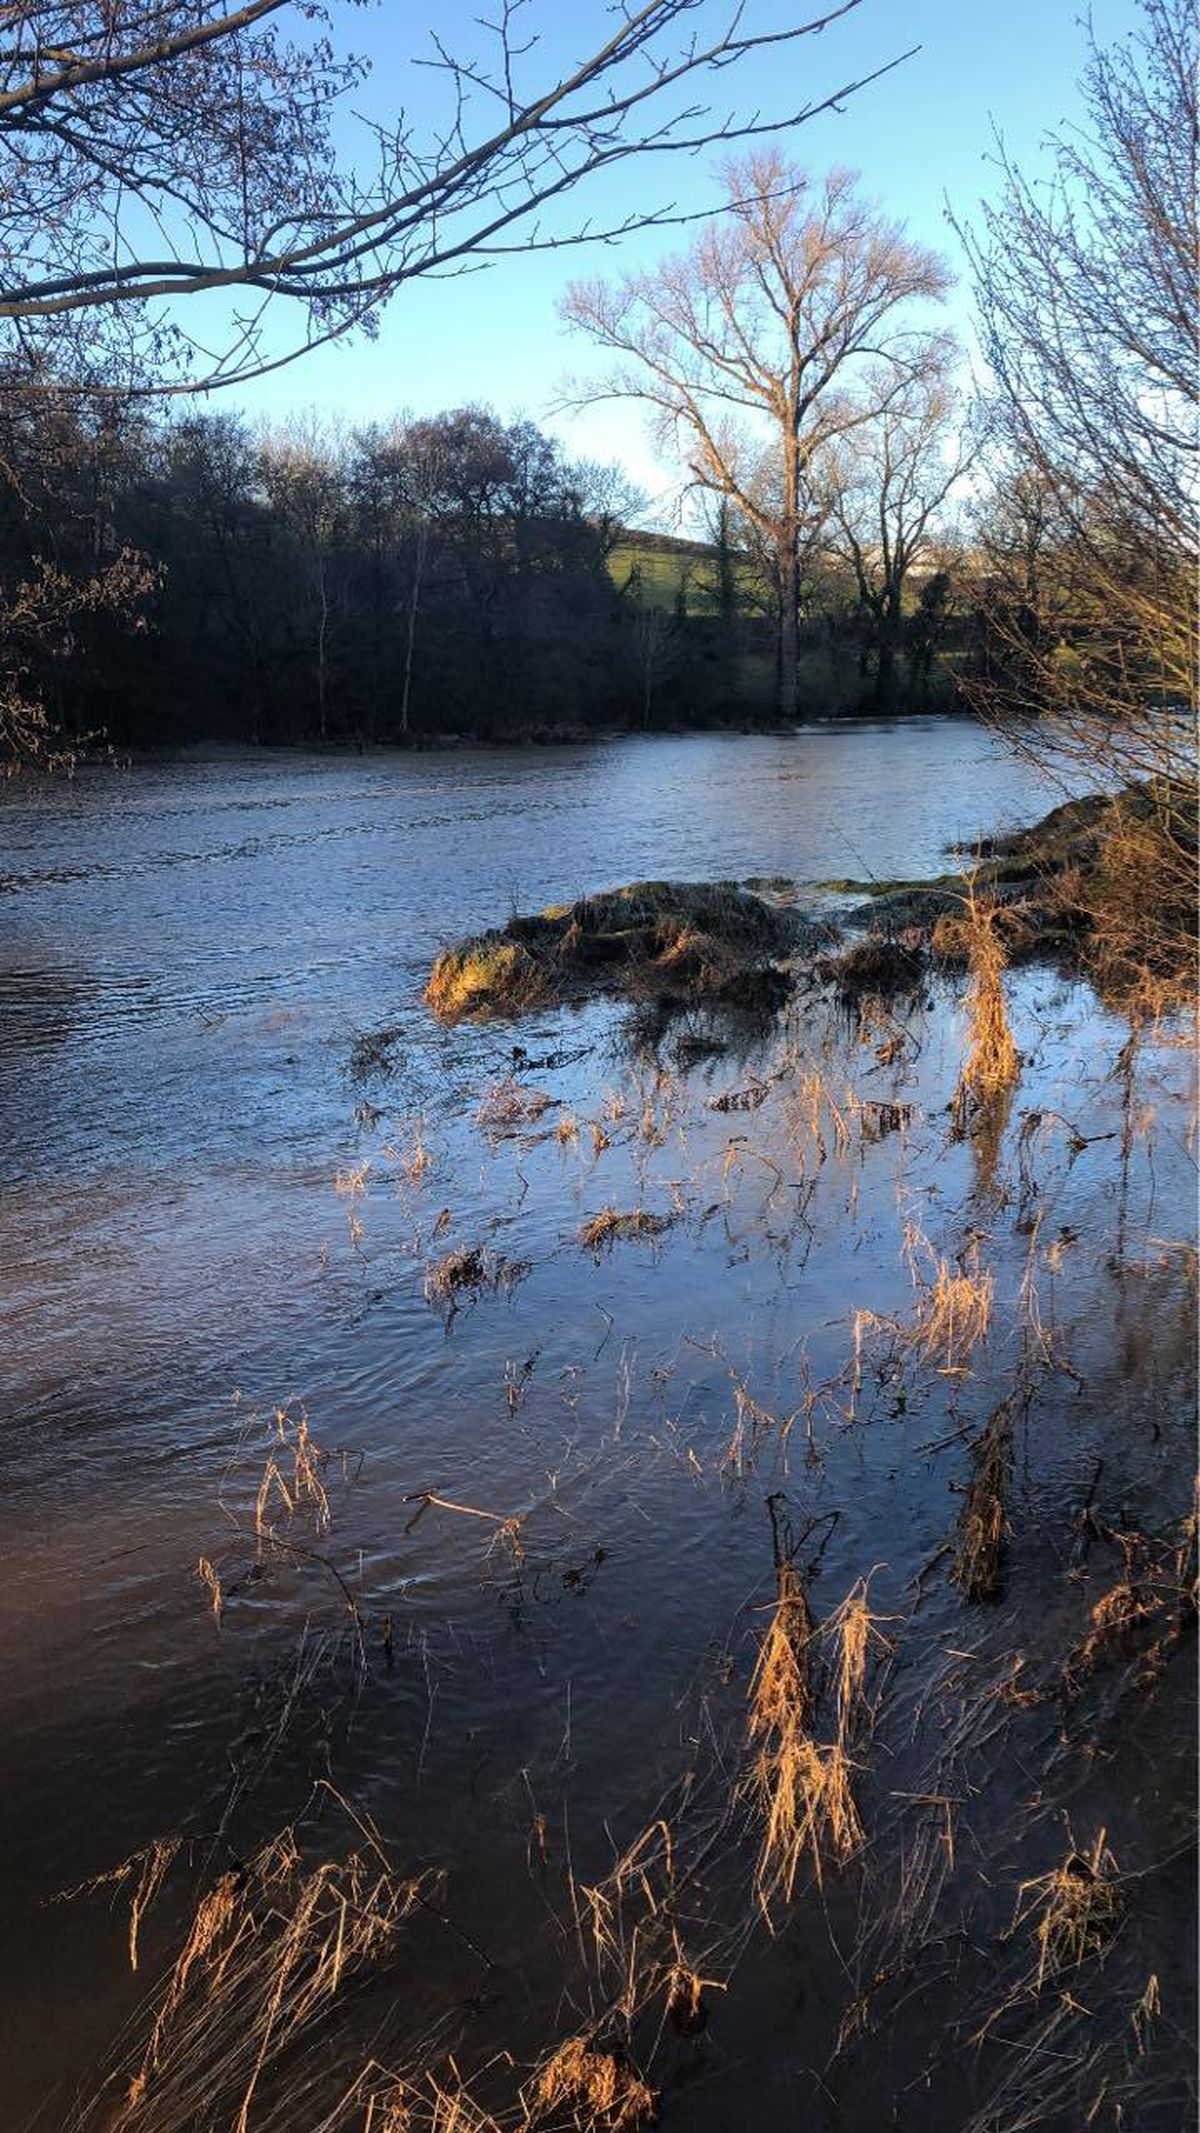 Flooding in Clun as the River Clun burst its banks. Photo by Jack Limond